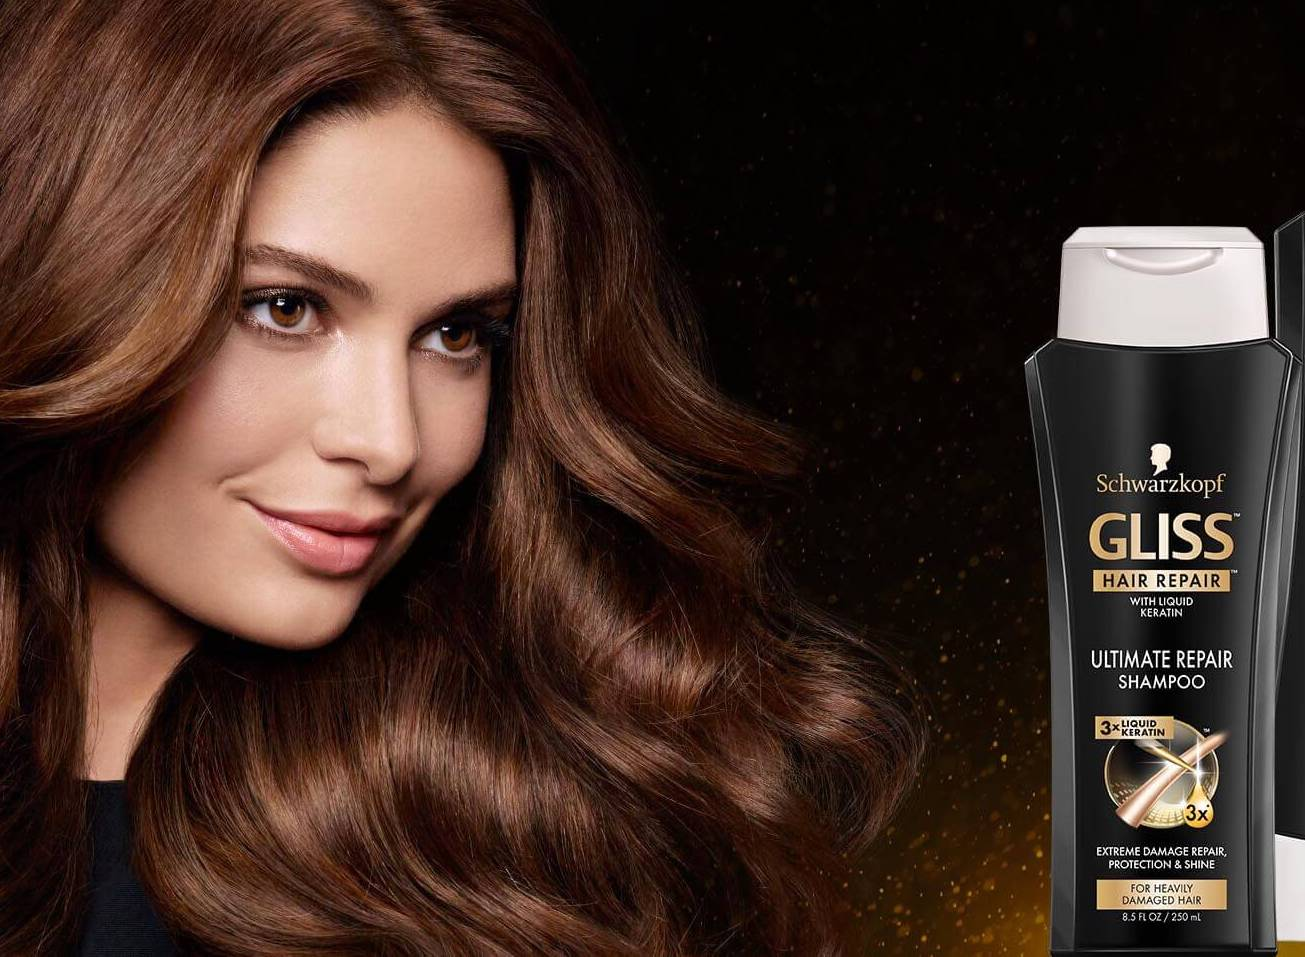 Schwarzkopf gliss allure best of beauty